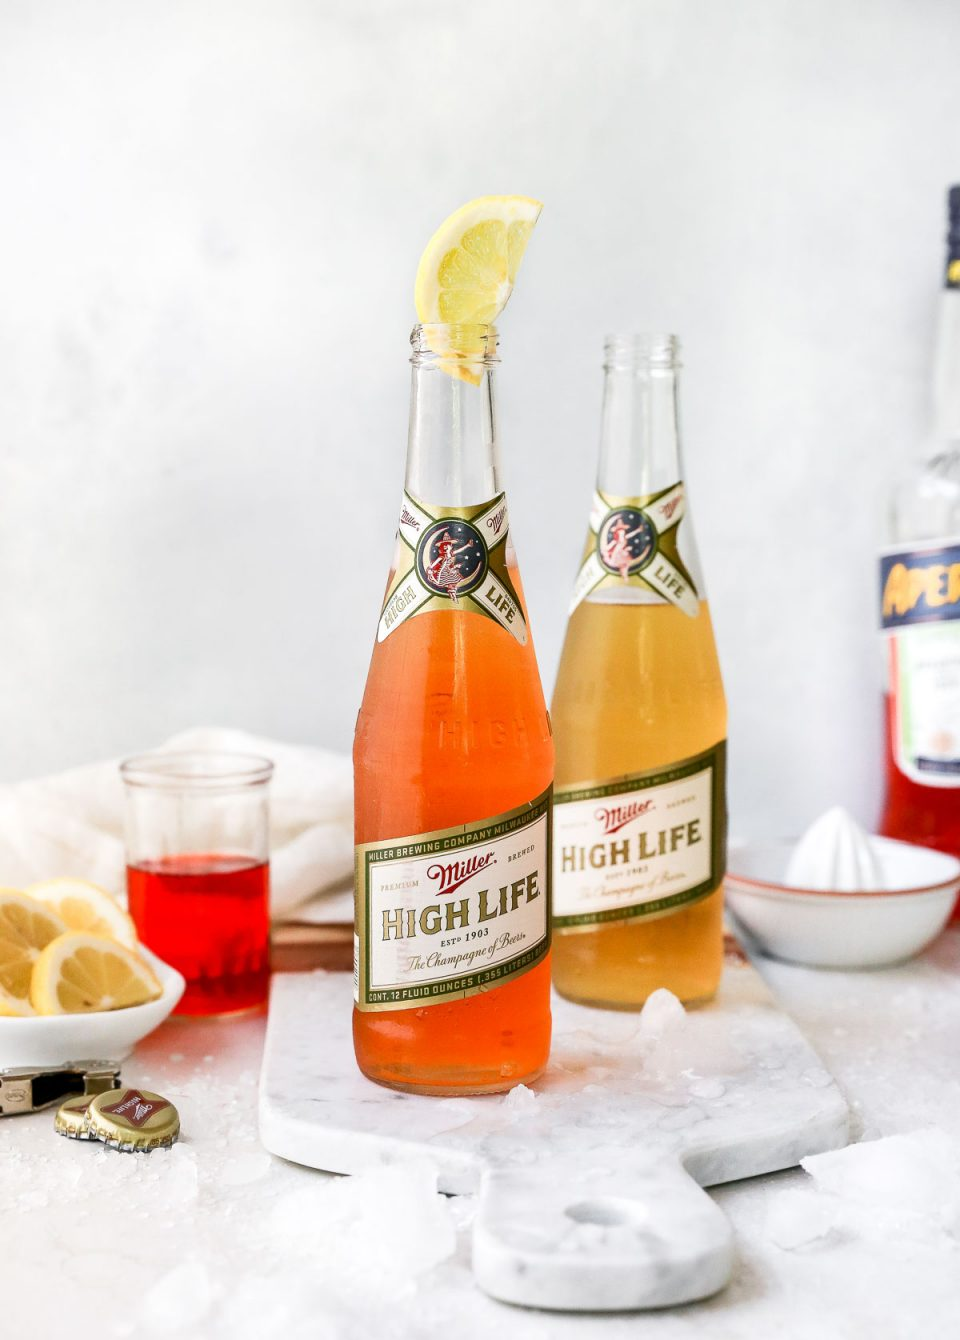 2 Spaghett Cocktails served in Miller High Life bottles. The beer bottles are on a white surface, surrounded by lemon wedges, ice & some Aperol liquor.